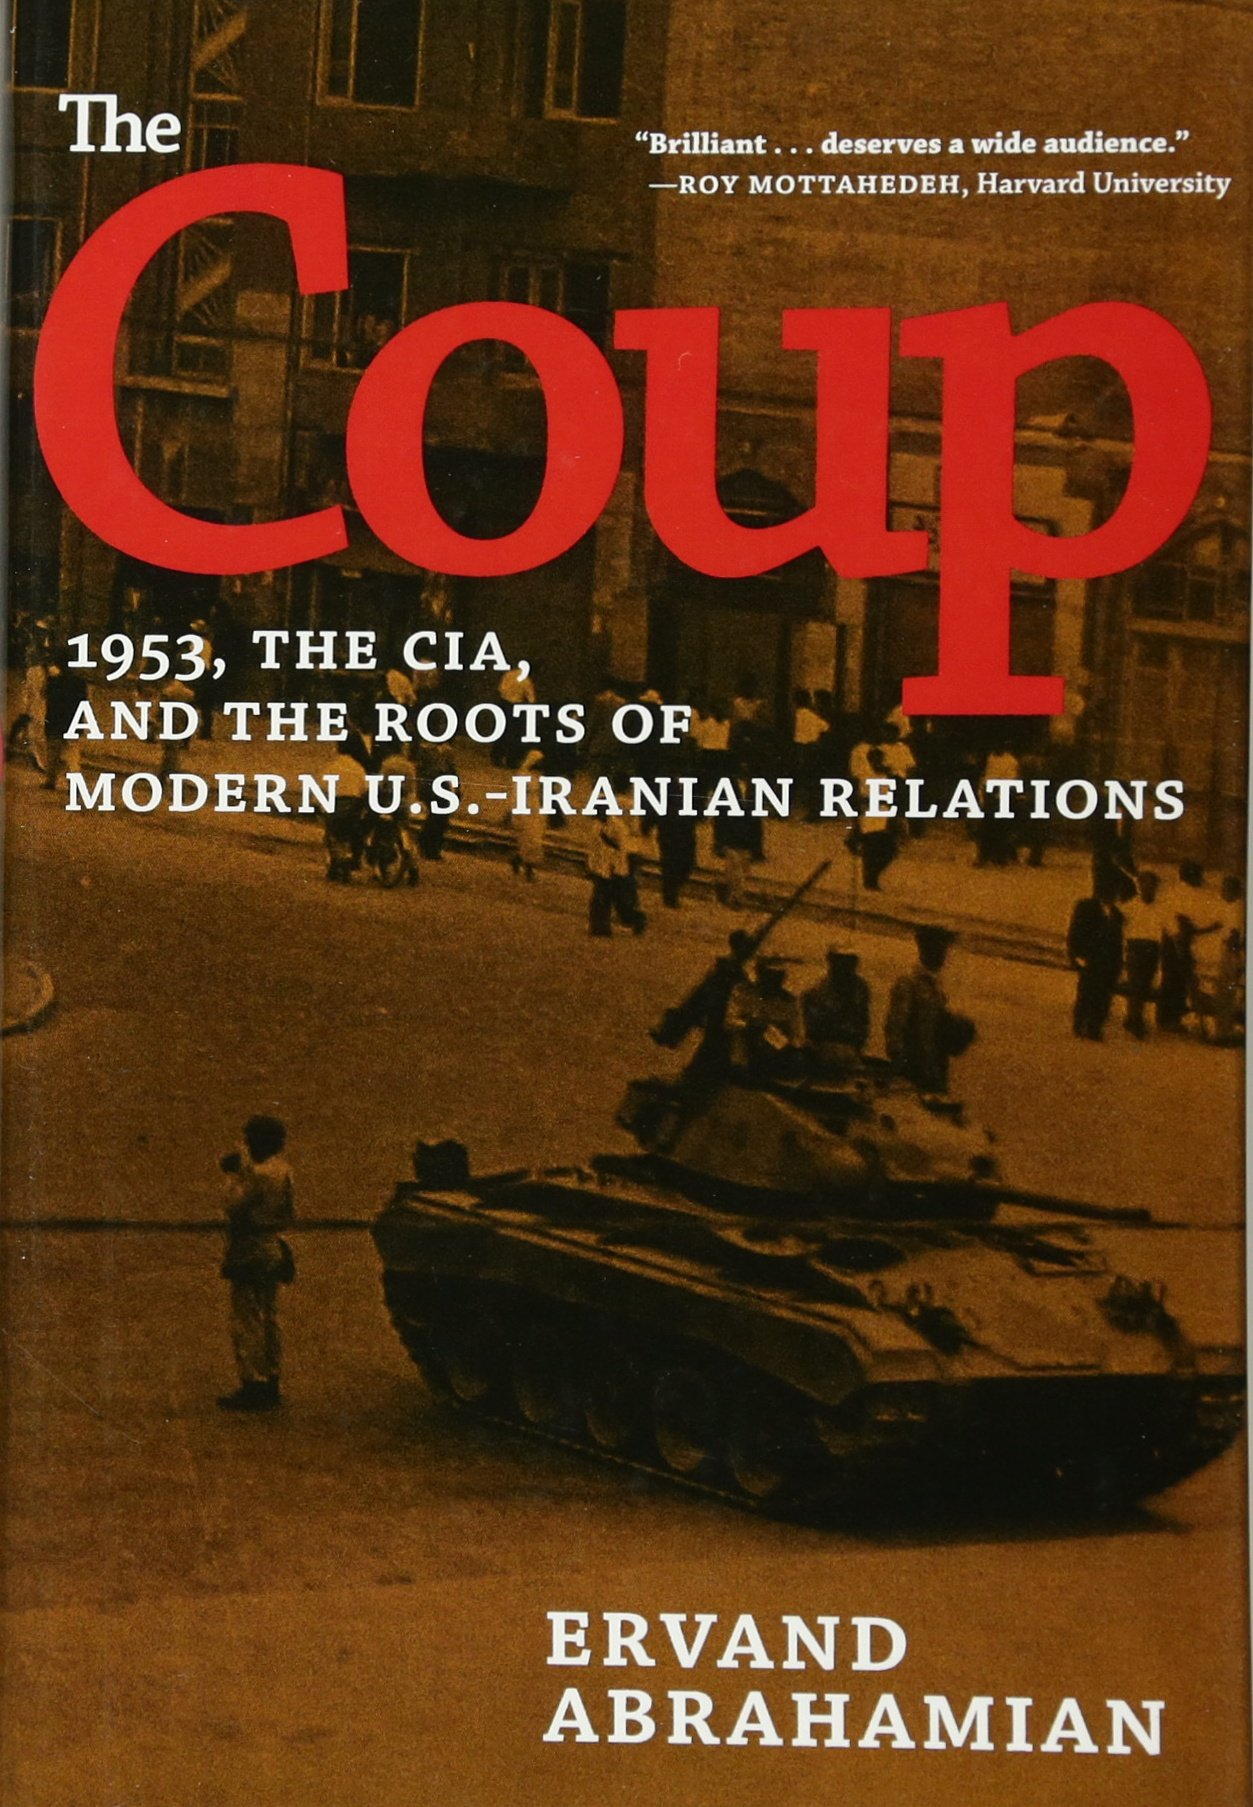 Read Online The Coup: 1953, The CIA, and The Roots of Modern U.S.-Iranian Relations ebook